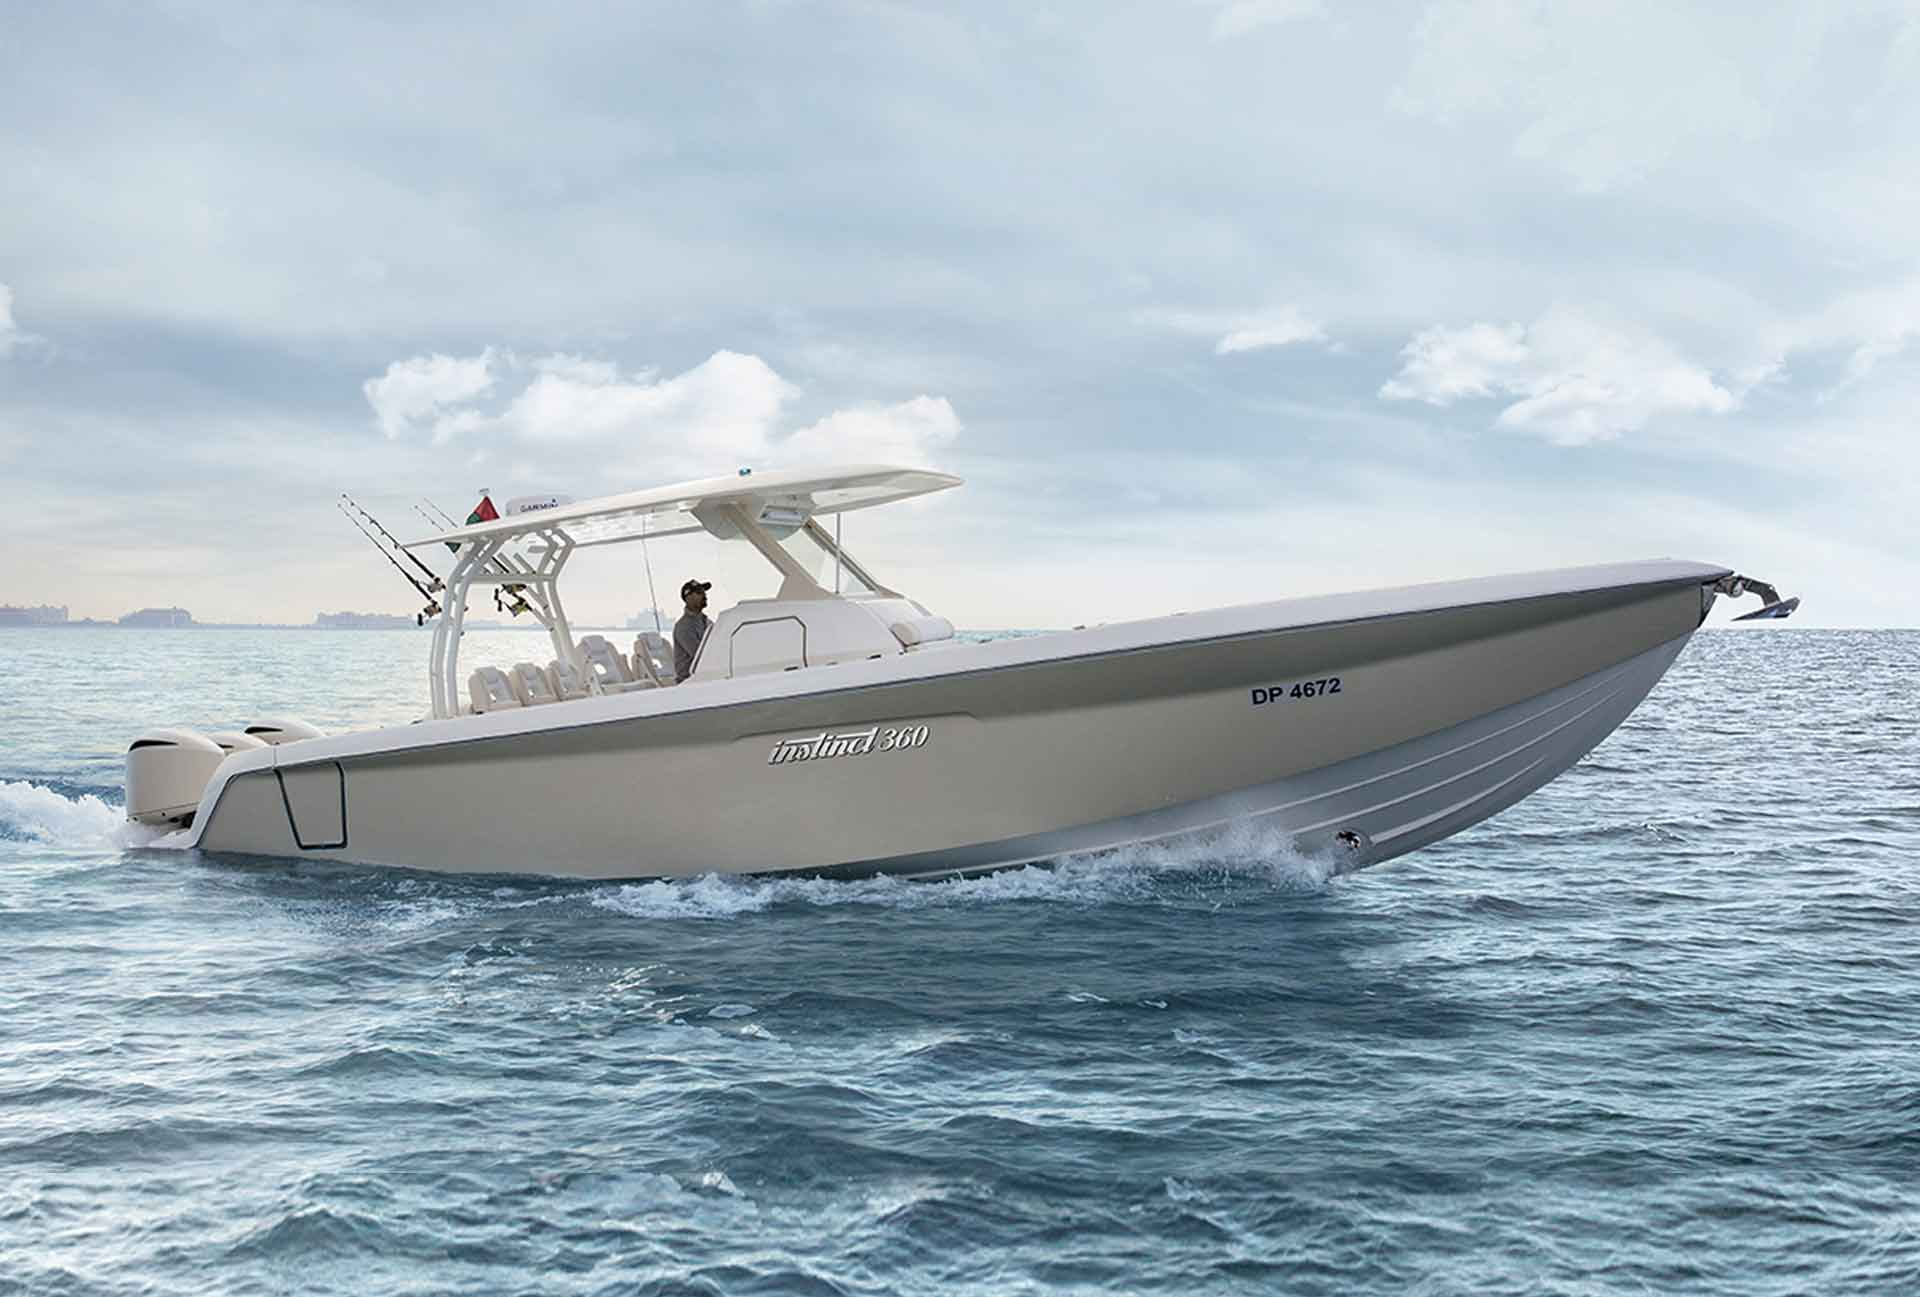 Instinct Marine to Launch the First Boat Specifically Designed for the GCC at the Dubai International Boat Show